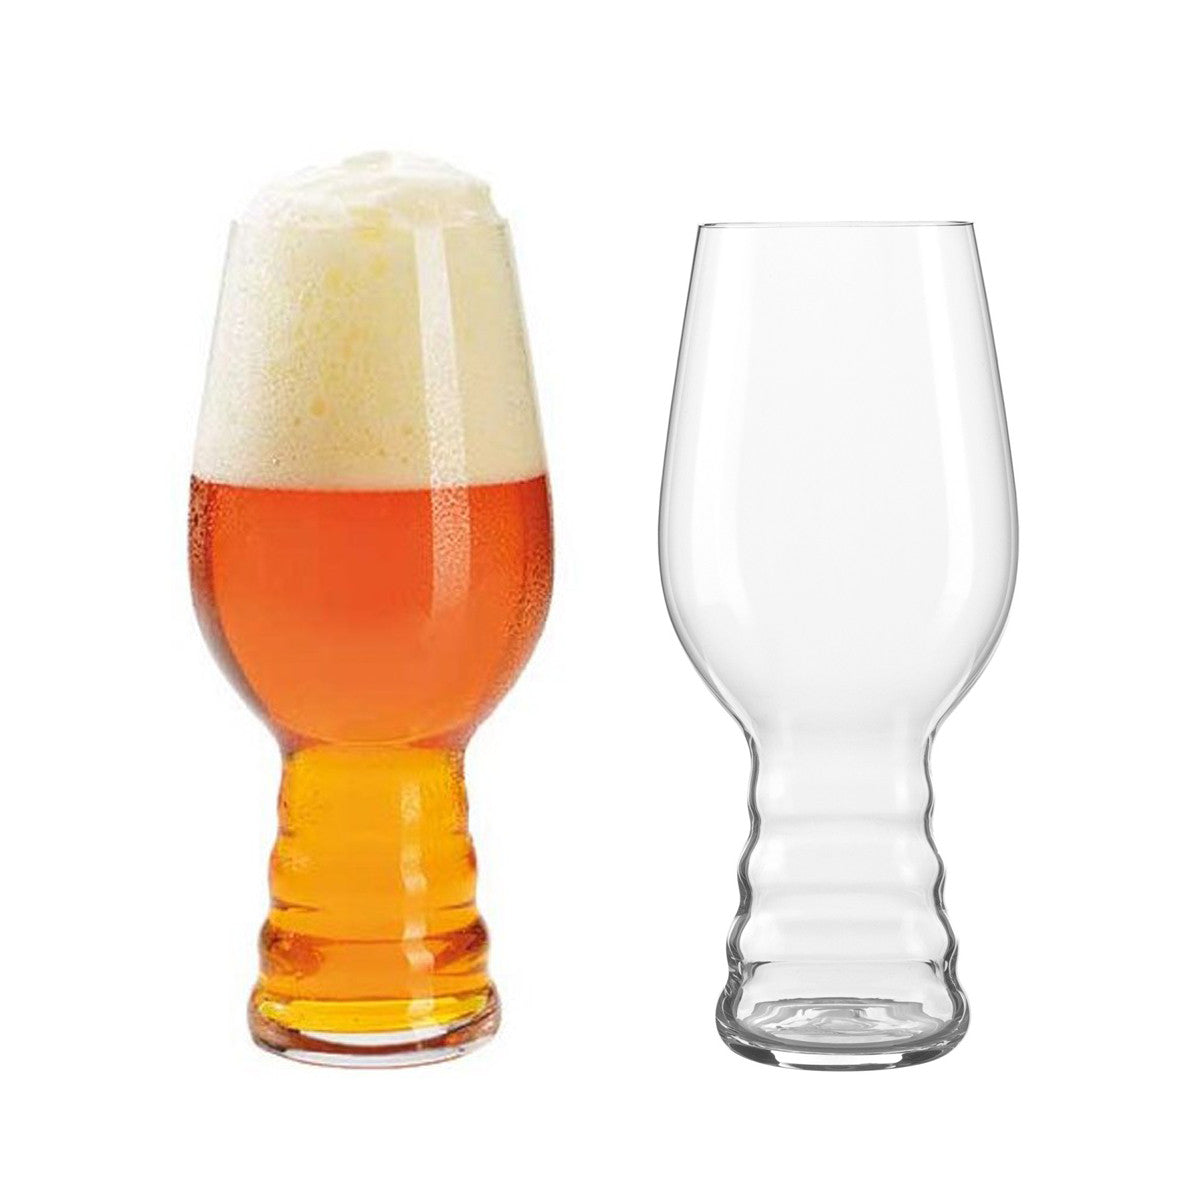 Craft Beer Indian Pale Ale Glass / Set 2